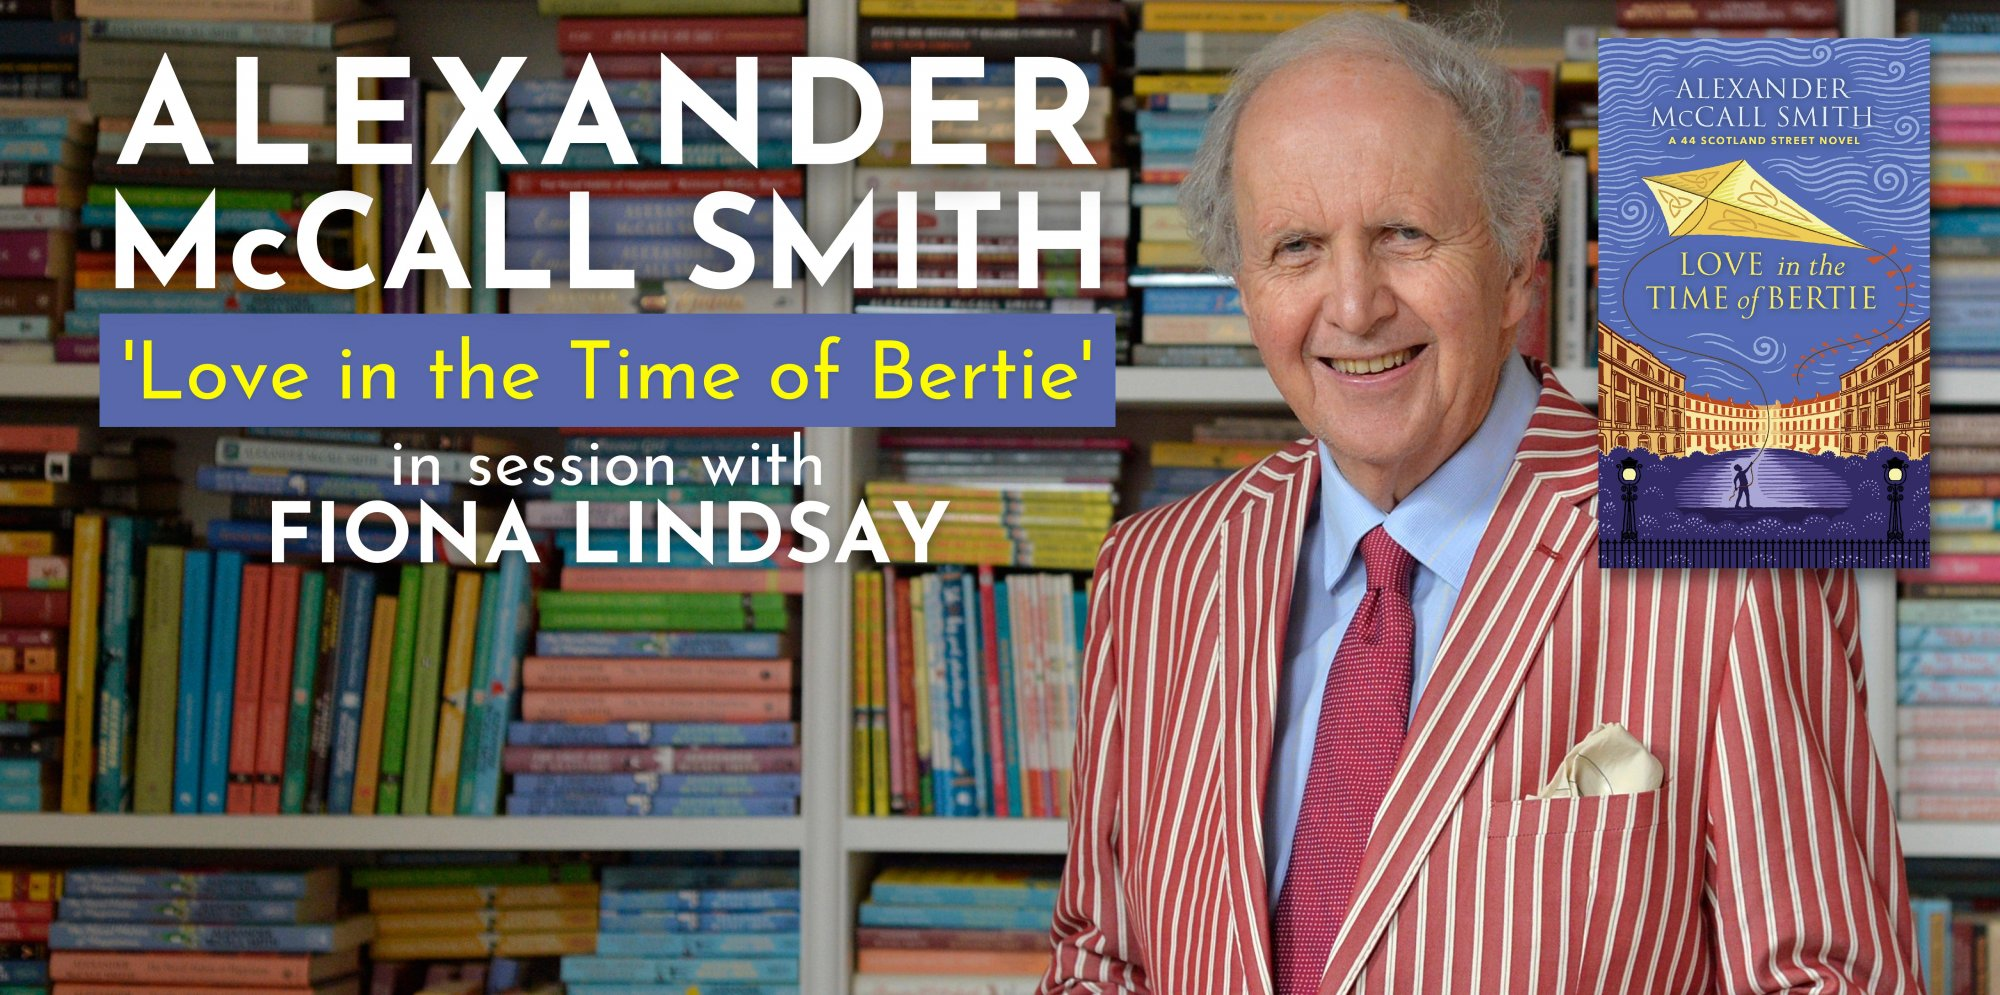 Text says Alexander McCall Smith 'Love in the time of Bertie' in session with Fiona Lindsay, Author McCall Smith wears a striped red blazer and there is a copy of the book which has a blue cover with a yellow kite